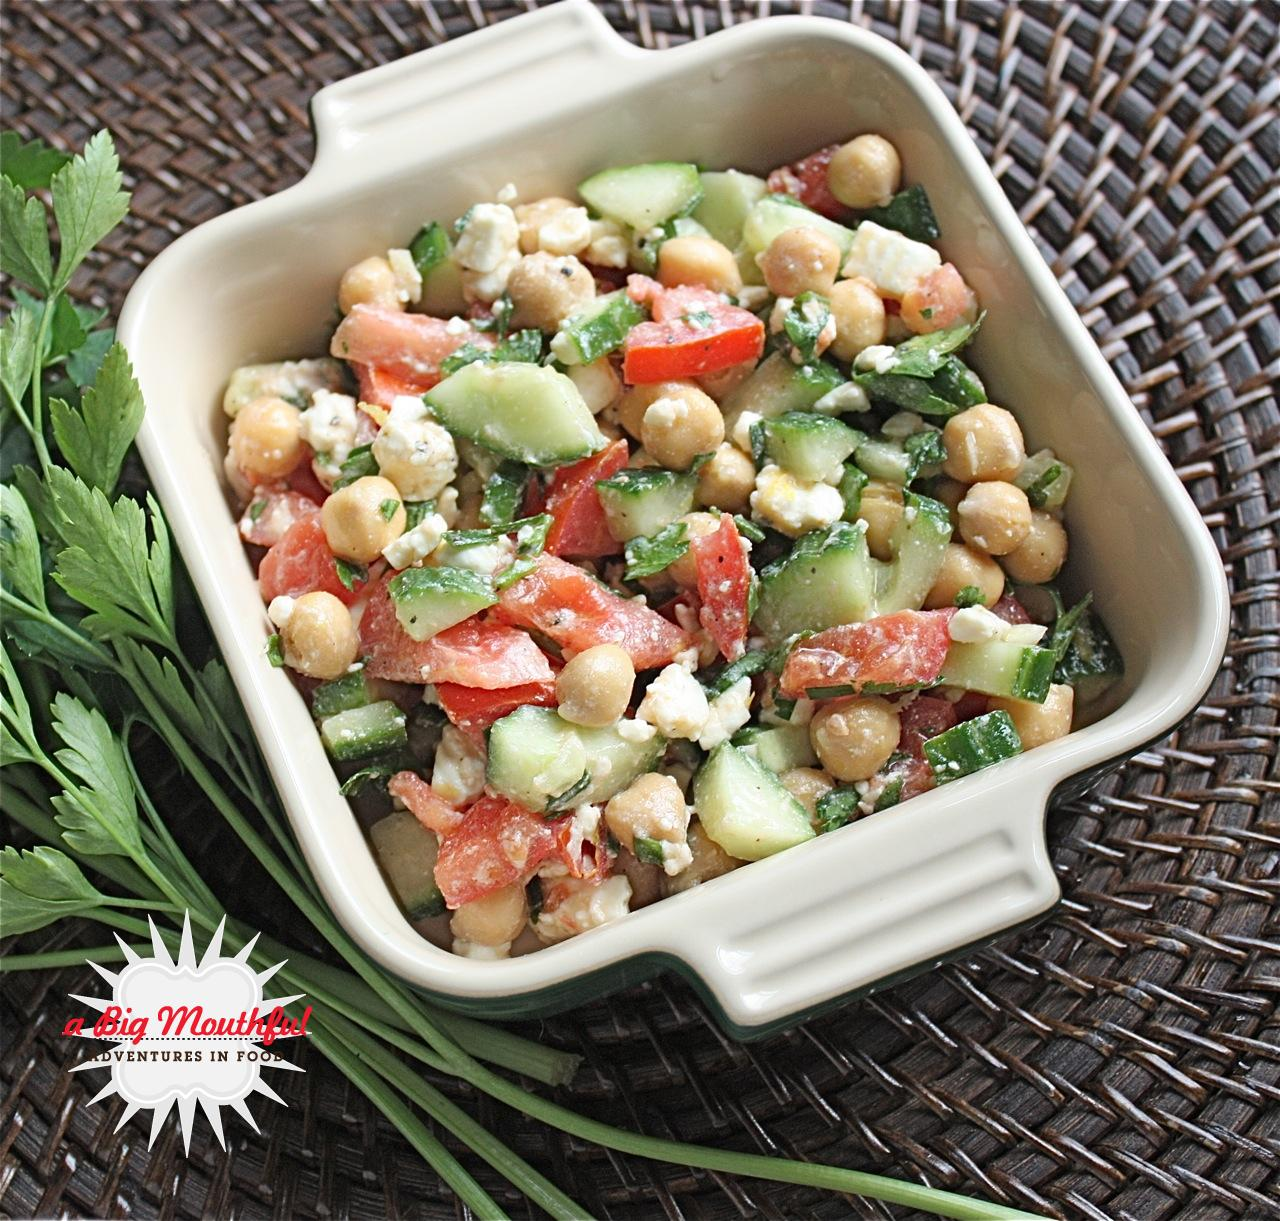 ... ve been up to + Mediterranean Chickpea Salad - A Big Mouthful